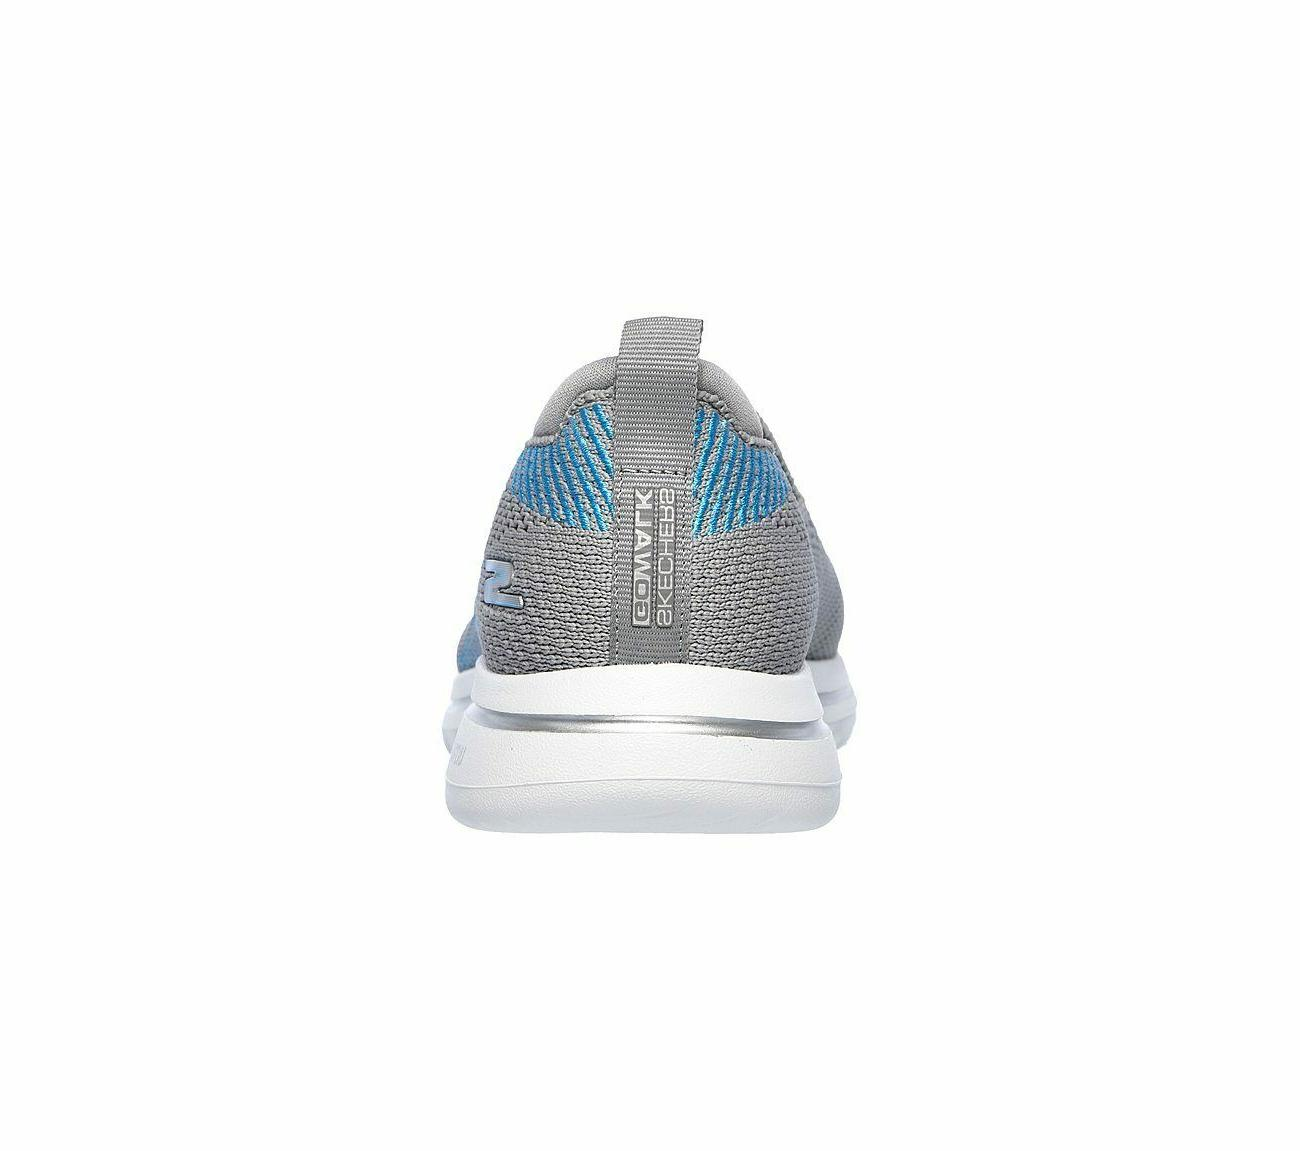 Skechers Shoes Gray Go Casual Slip On Comfort Sporty 15900